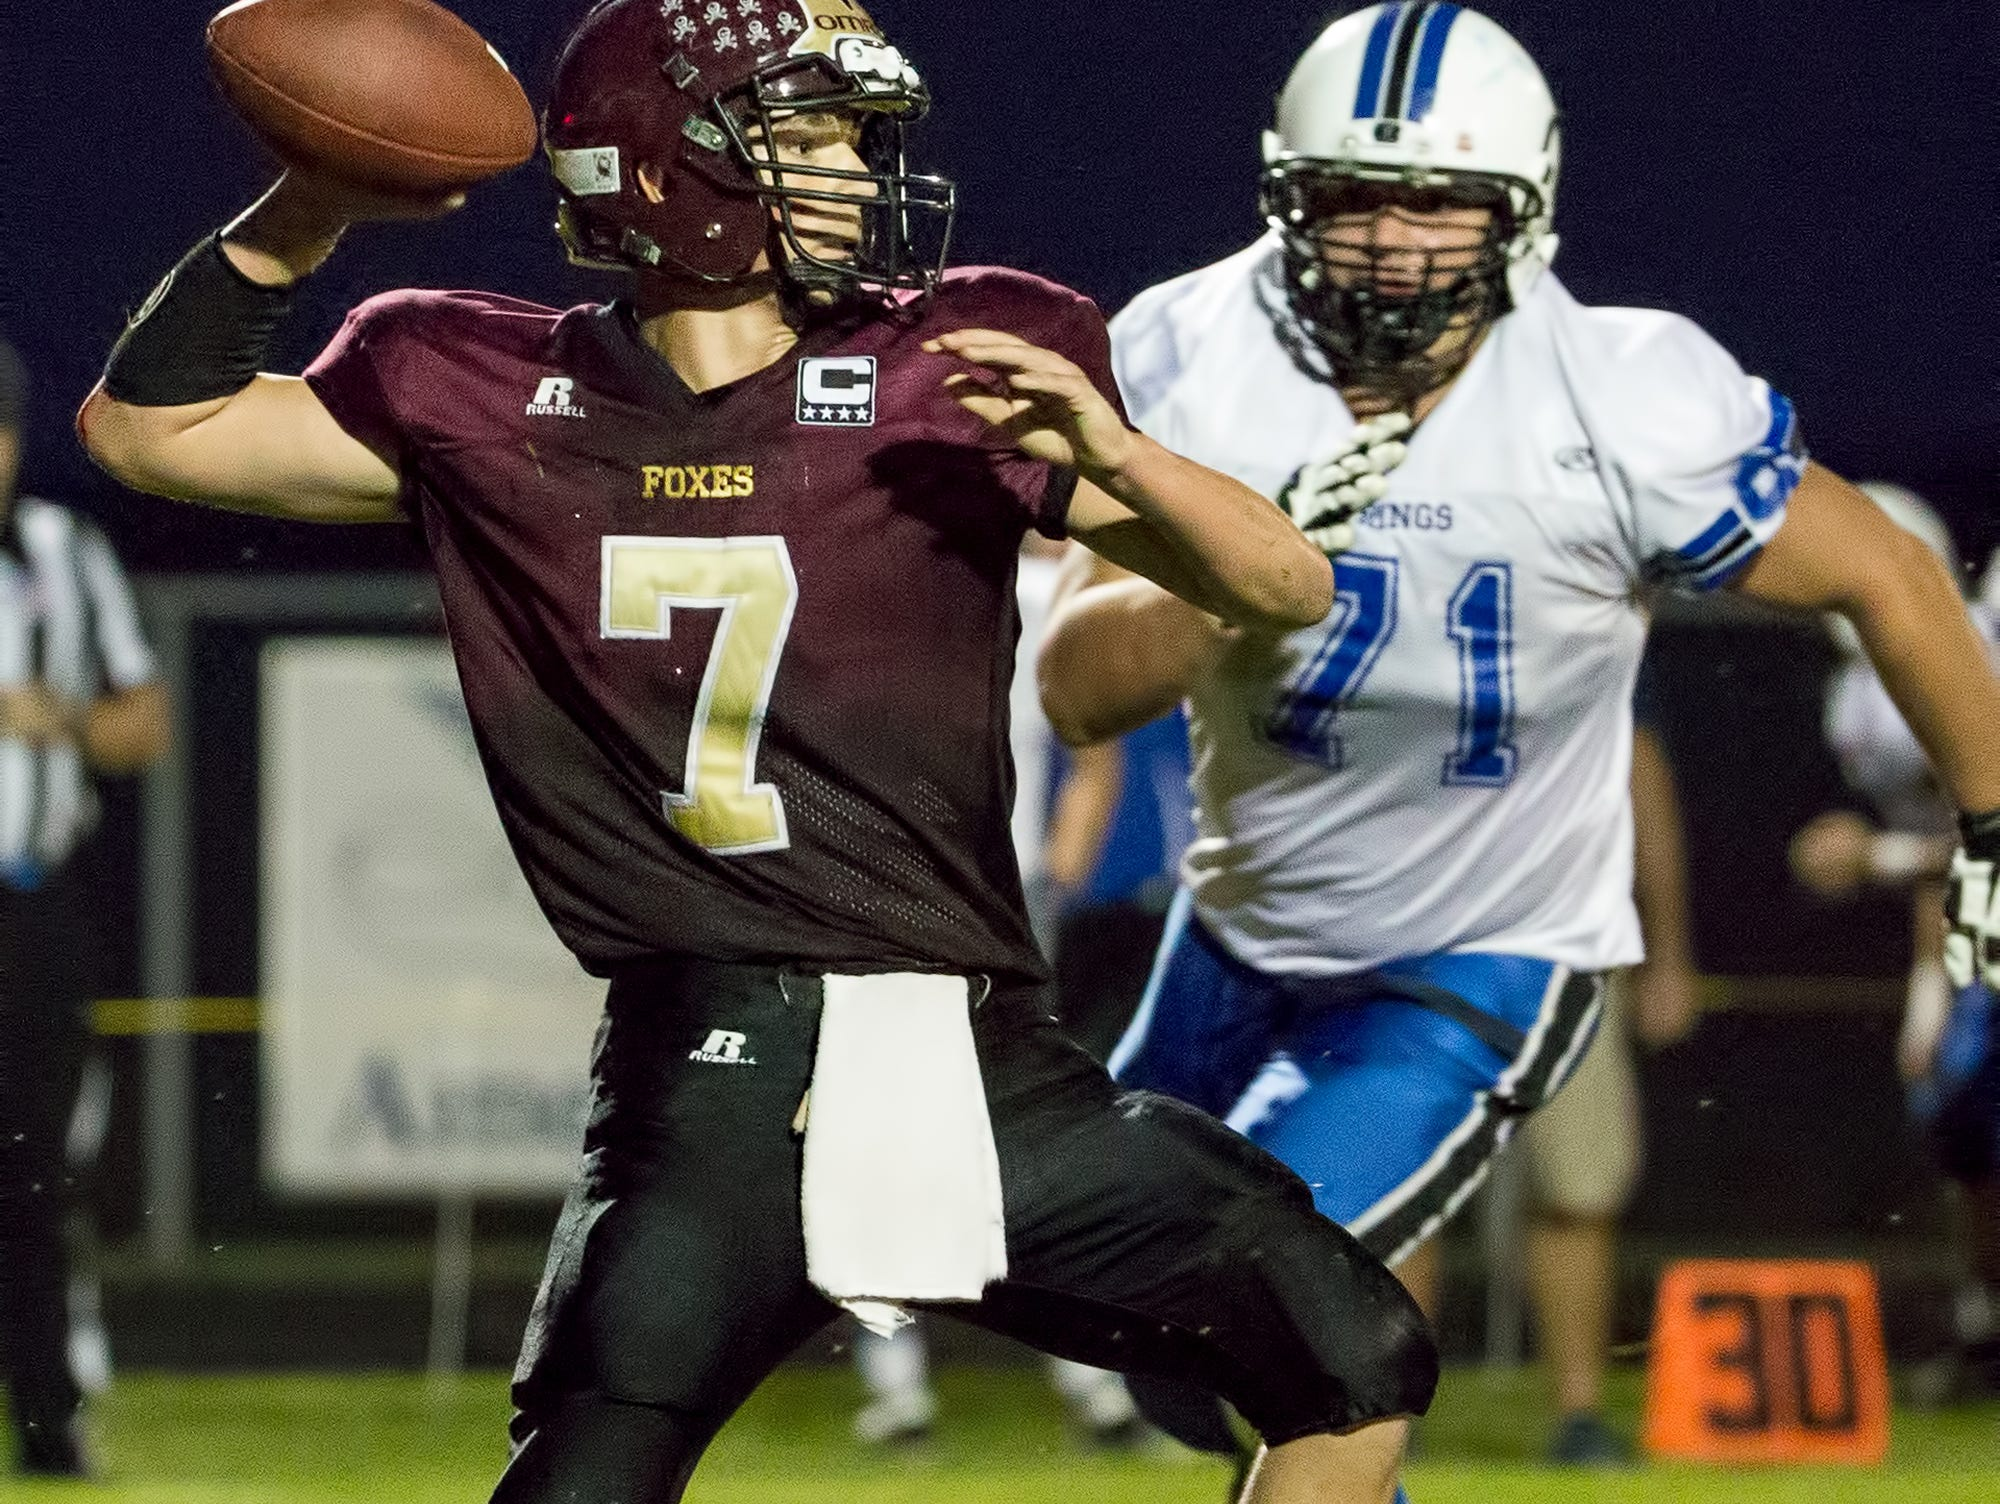 St. Mary's Springs junior Michael Buetow (71) was a unanimous first-team selection on both offense and defense on the all-Flyway Conference football teams.